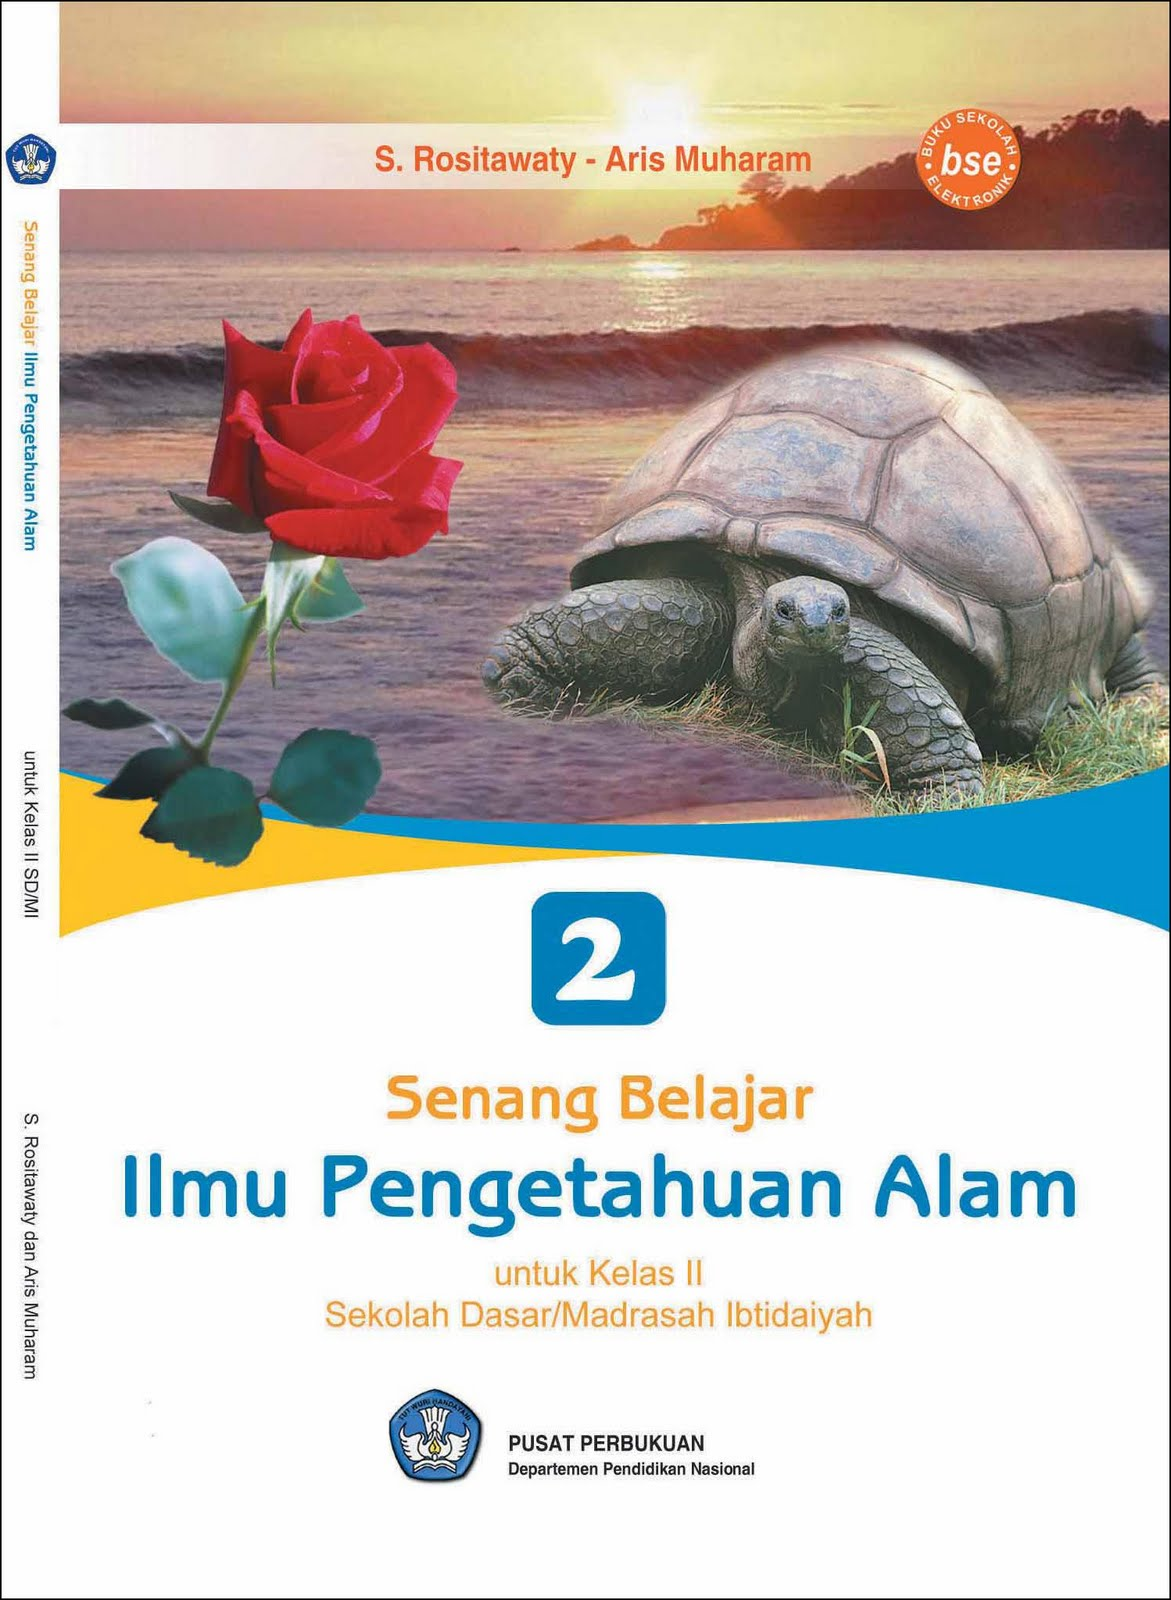 Download Proposal Skripsi Ptk Pkn Di Kelas 4 Sd Skripsi Inside Download Contoh Judul Skripsi Buku Pkn Kurikulum 2013 Smp Kelas 7 Free Download Pdf